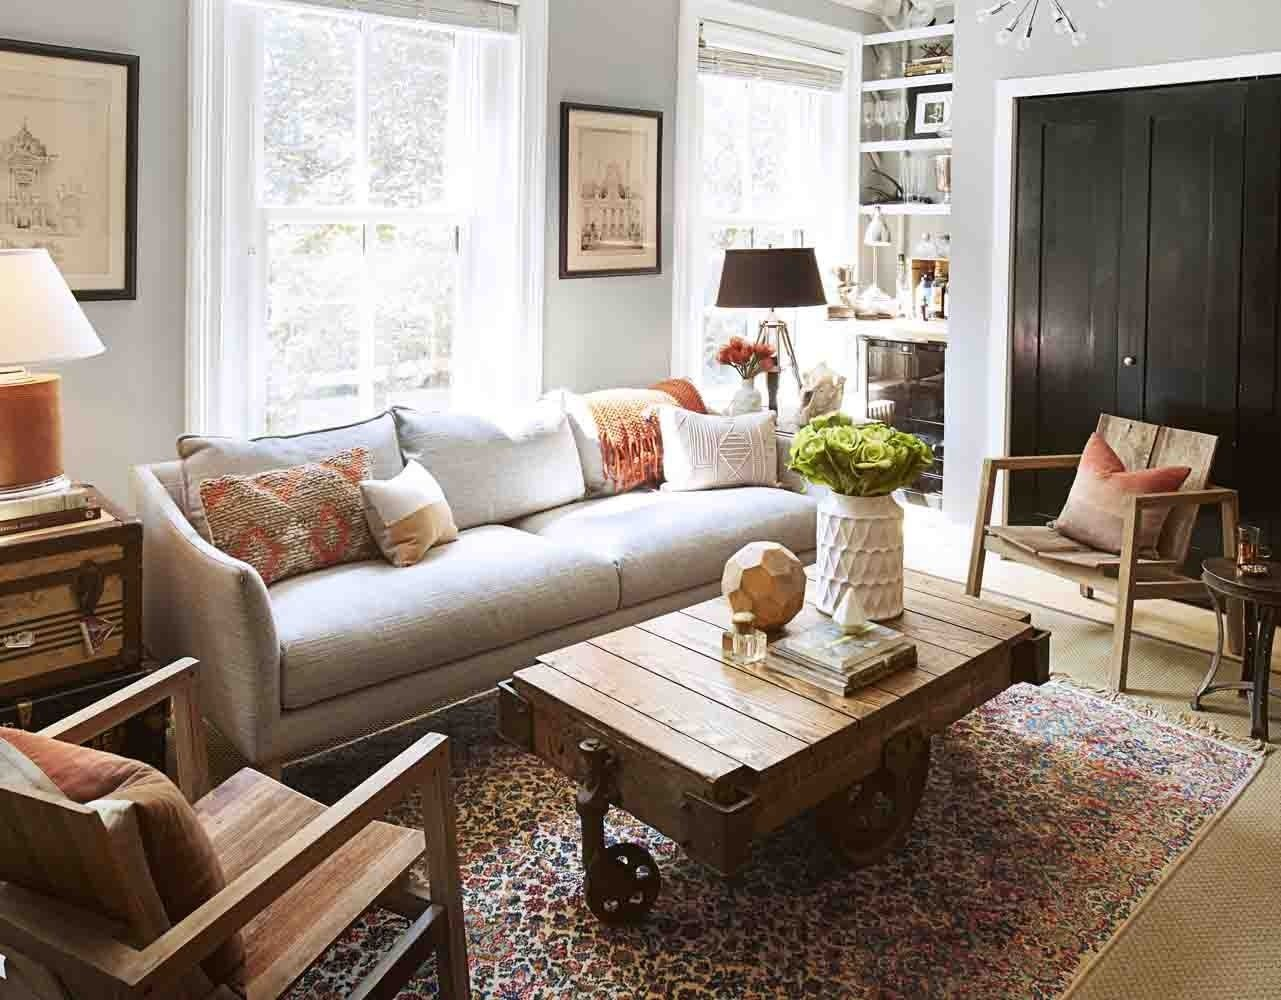 10 Unique Interior Design Living Room Ideas 51 best living room ideas stylish living room decorating designs 9 2021